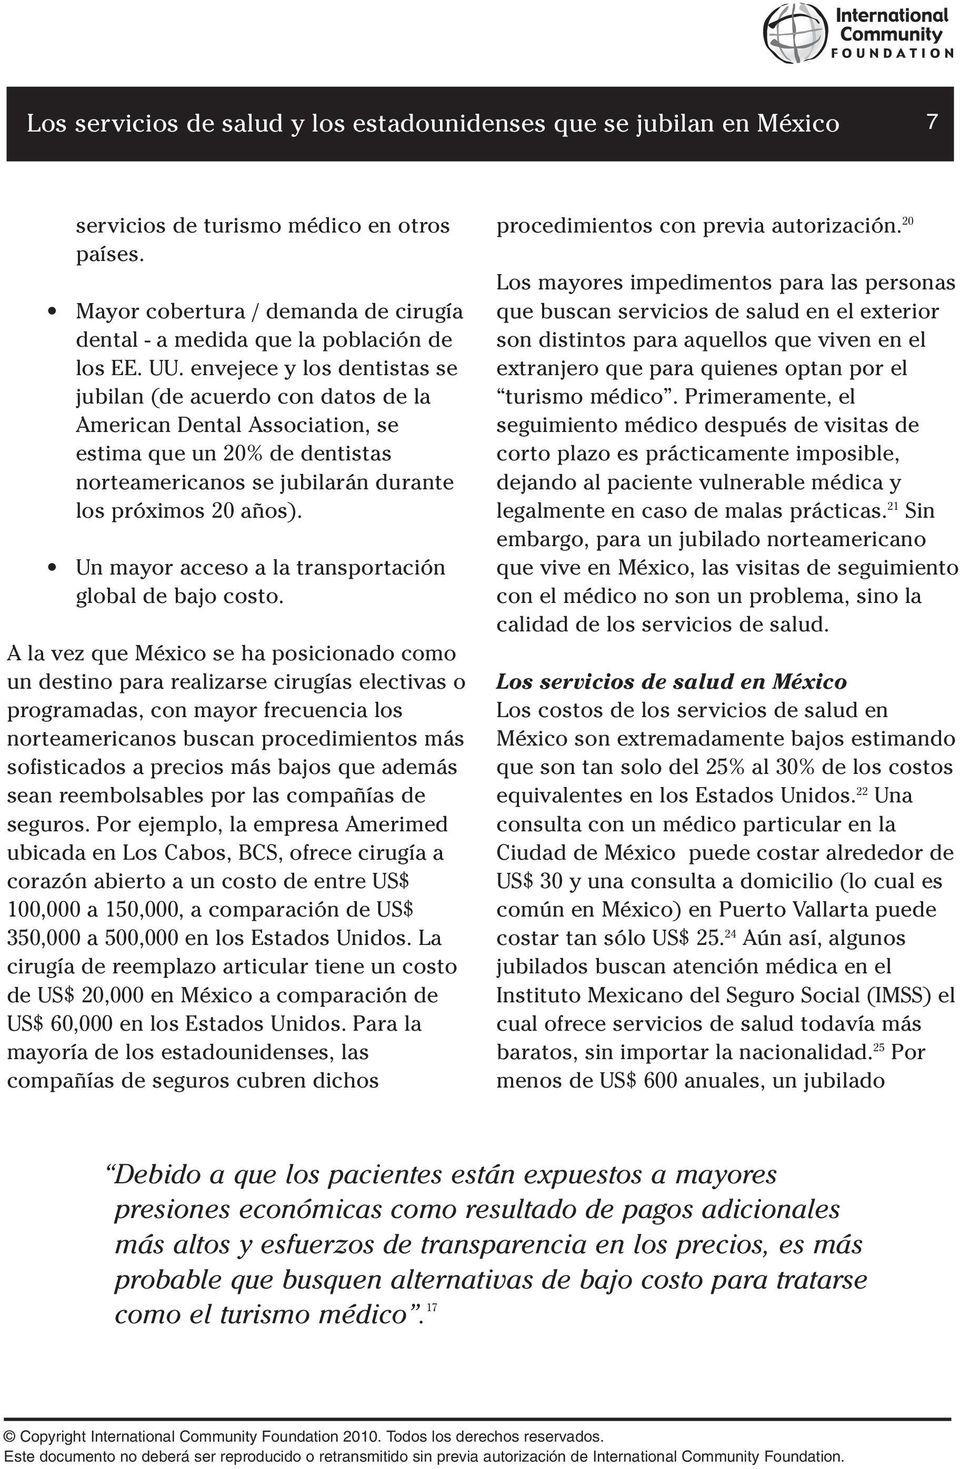 Un mayor acceso a la transportación global de bajo costo.